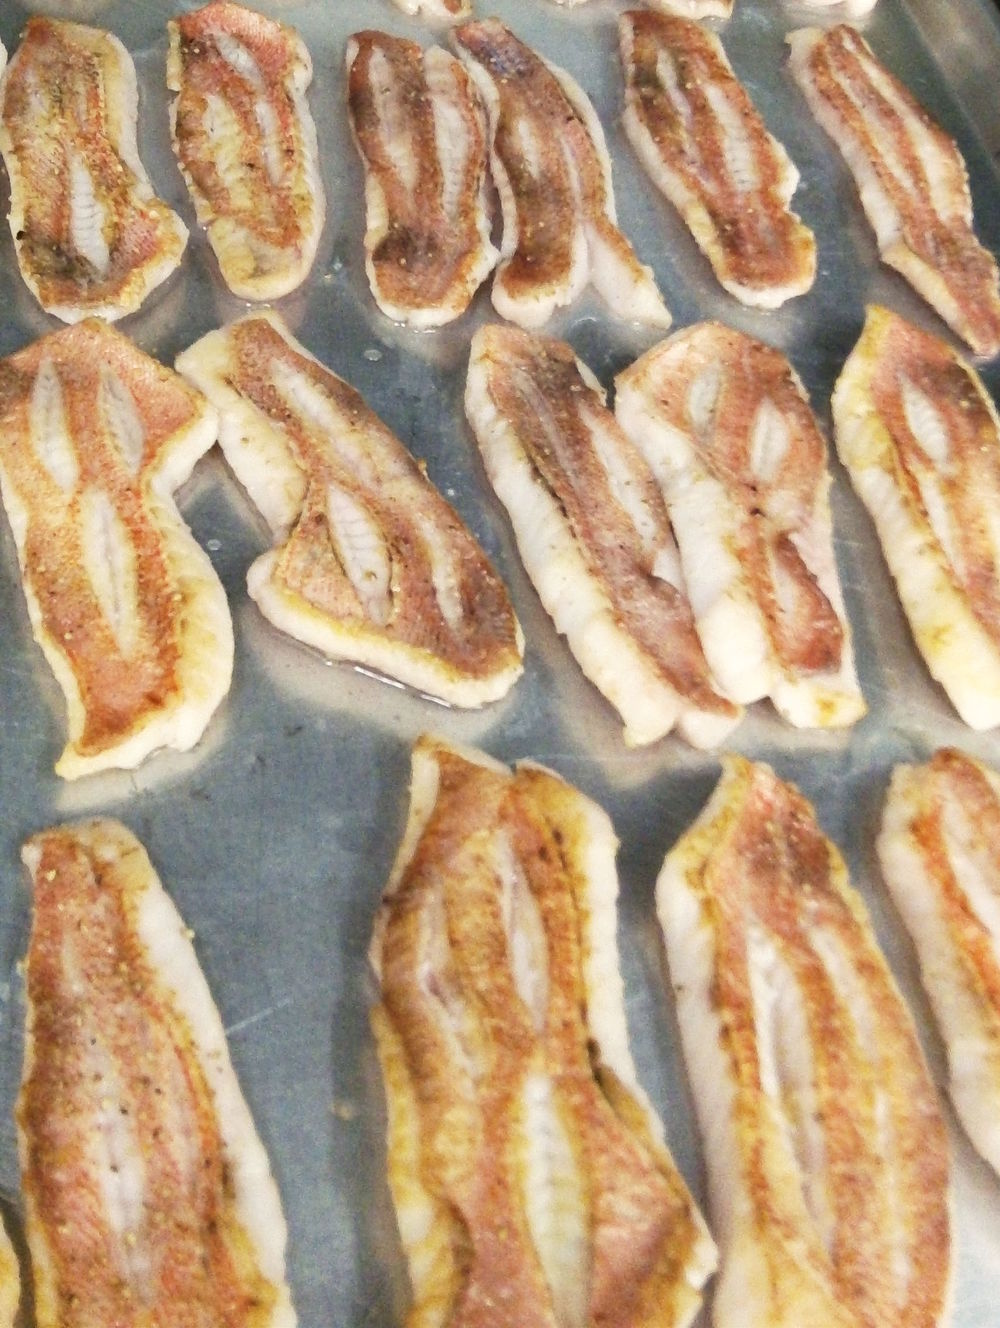 Arcadian redfish fillets just out of the oven